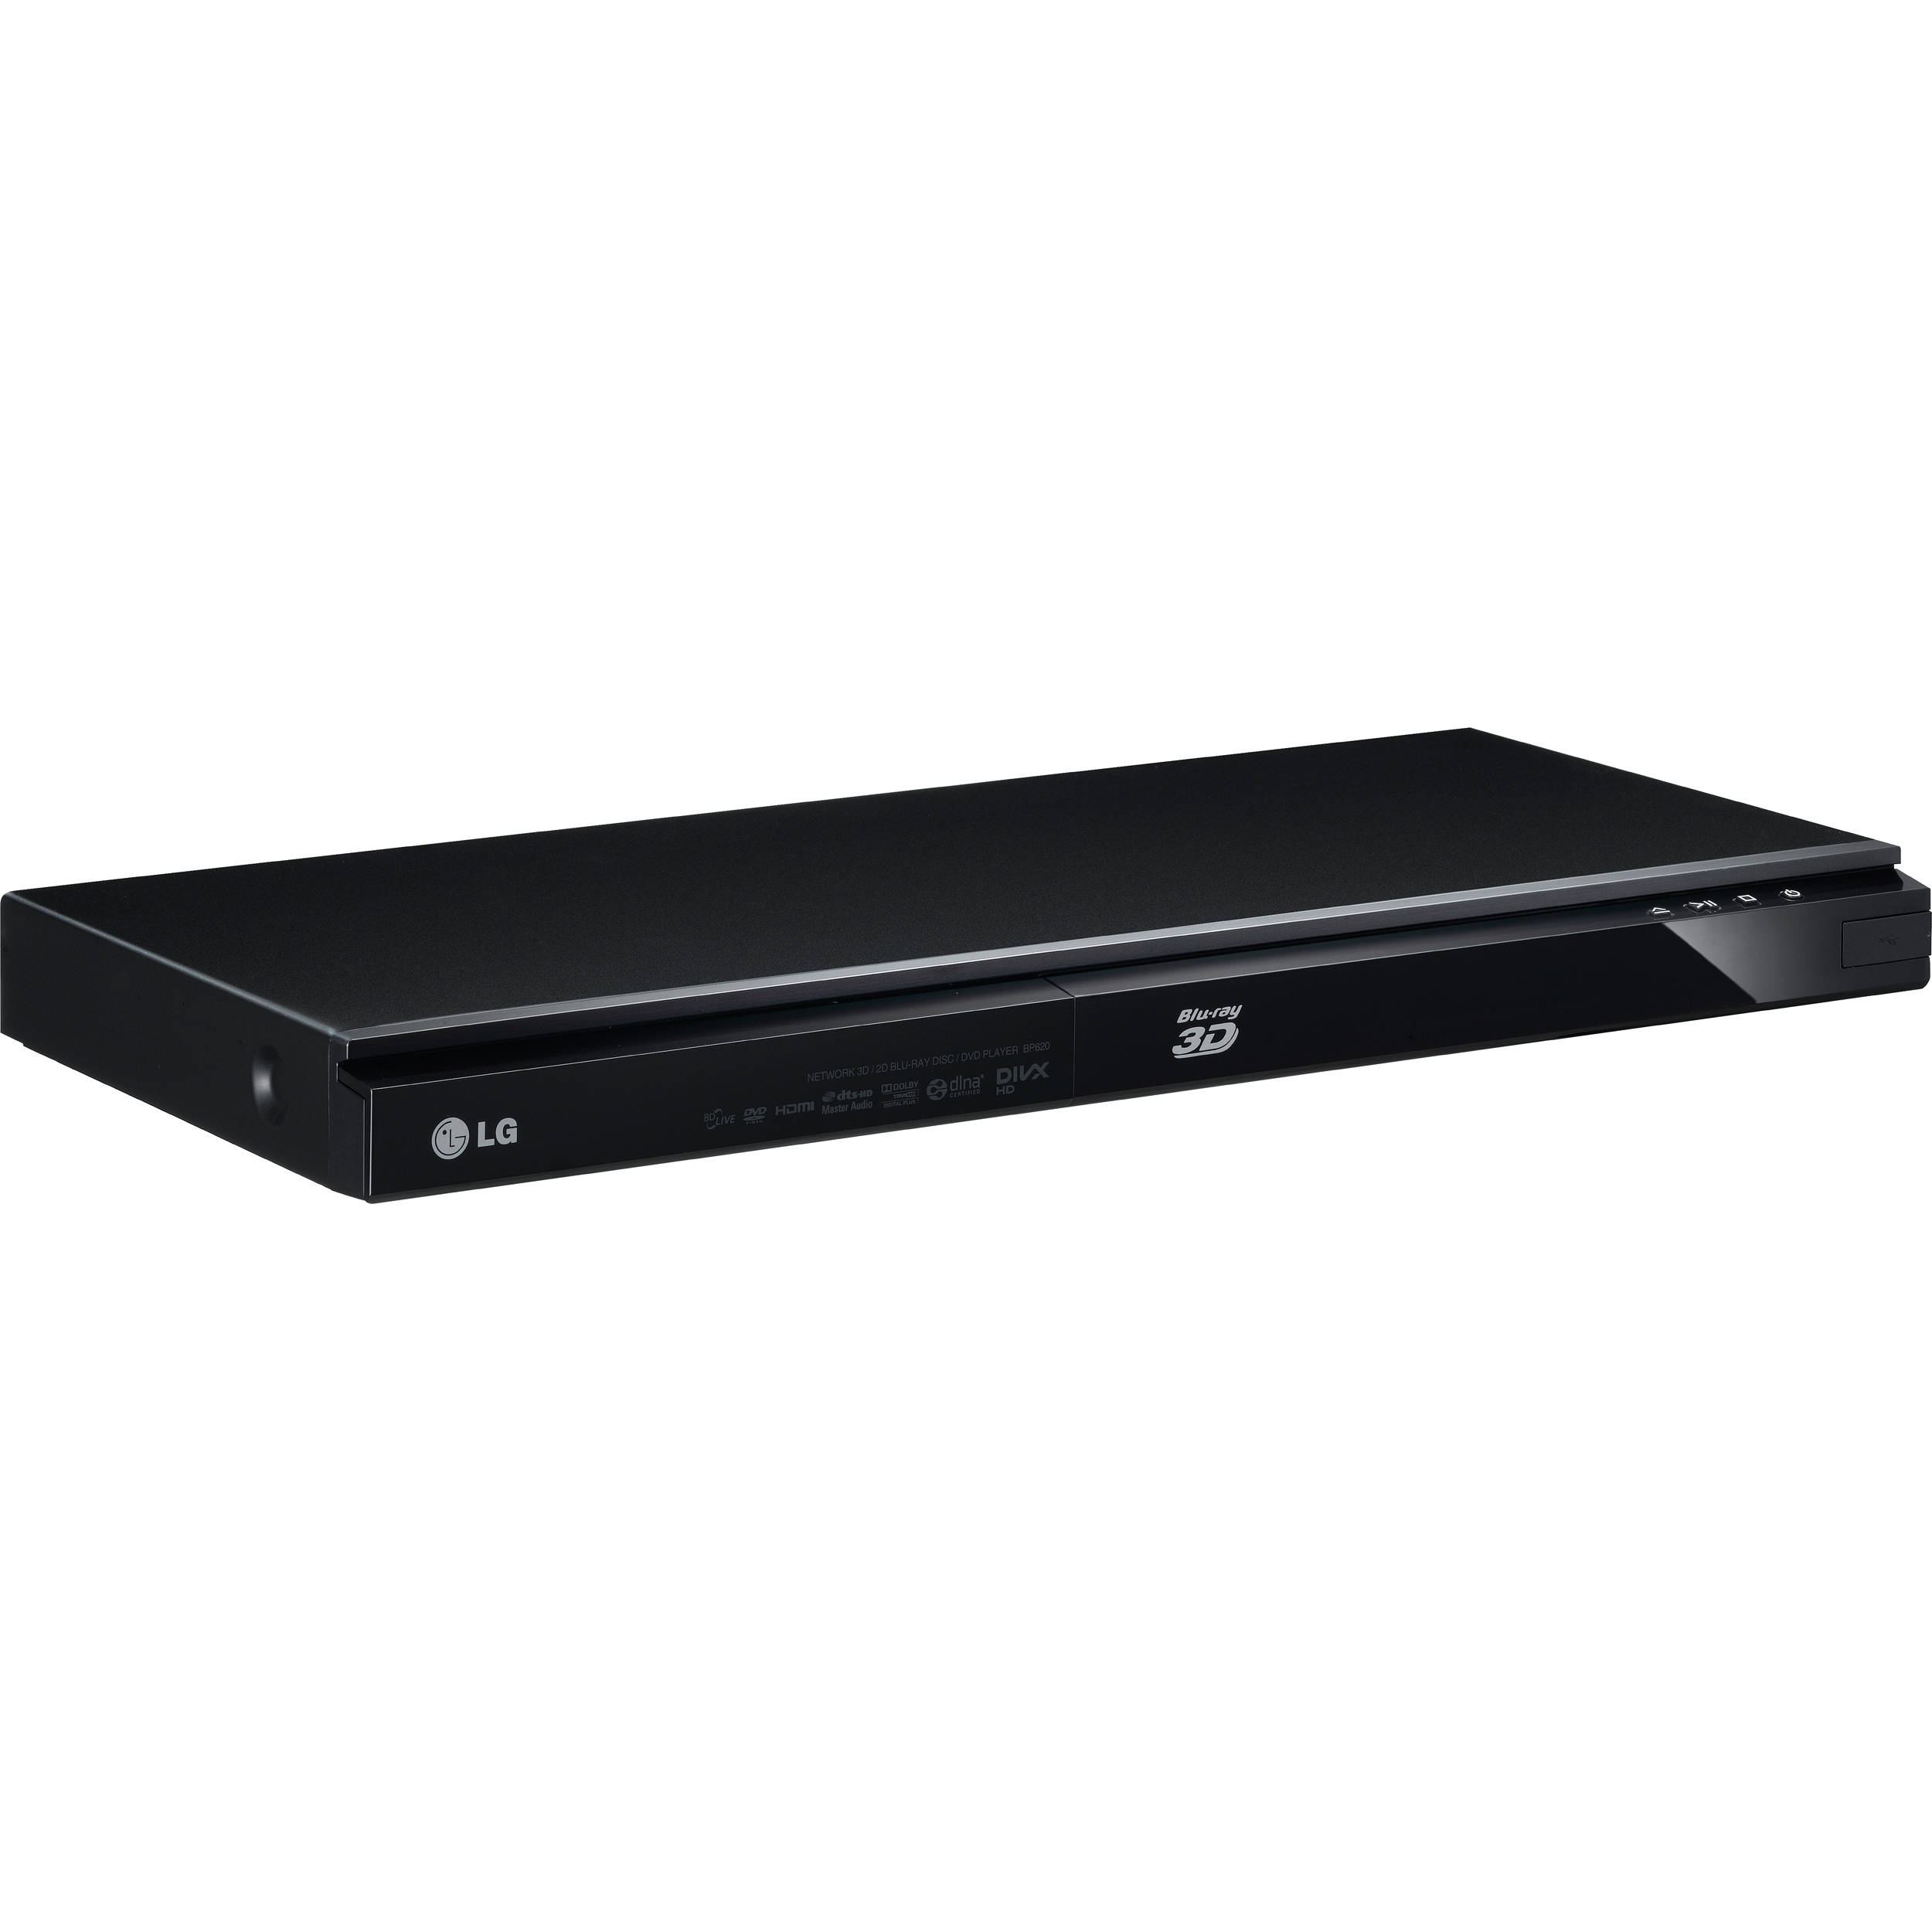 LG BP620 3D Blu-ray Disc Player BP620 B&H Photo Video